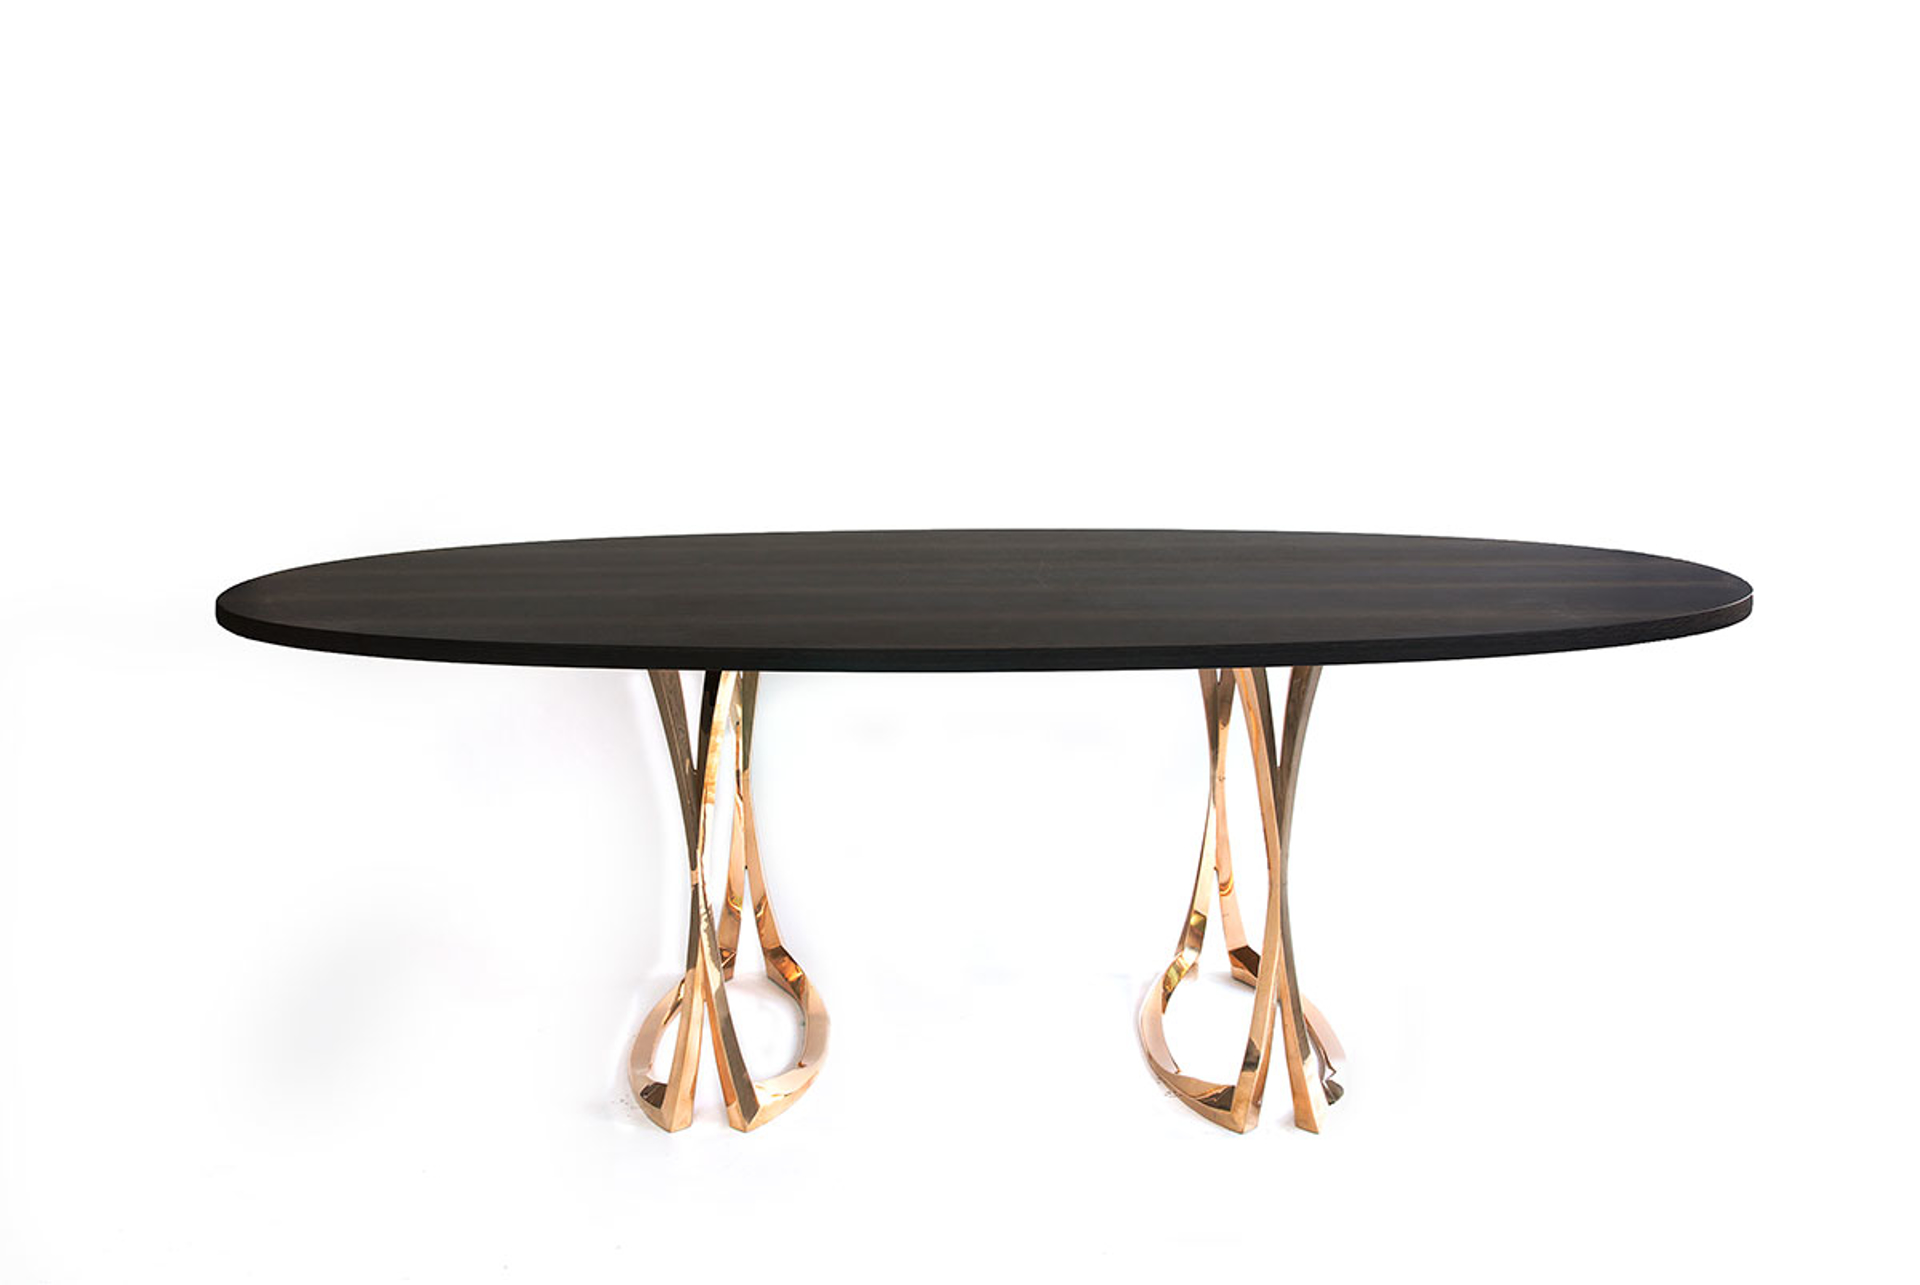 Dining Table by Anasthasia Millot